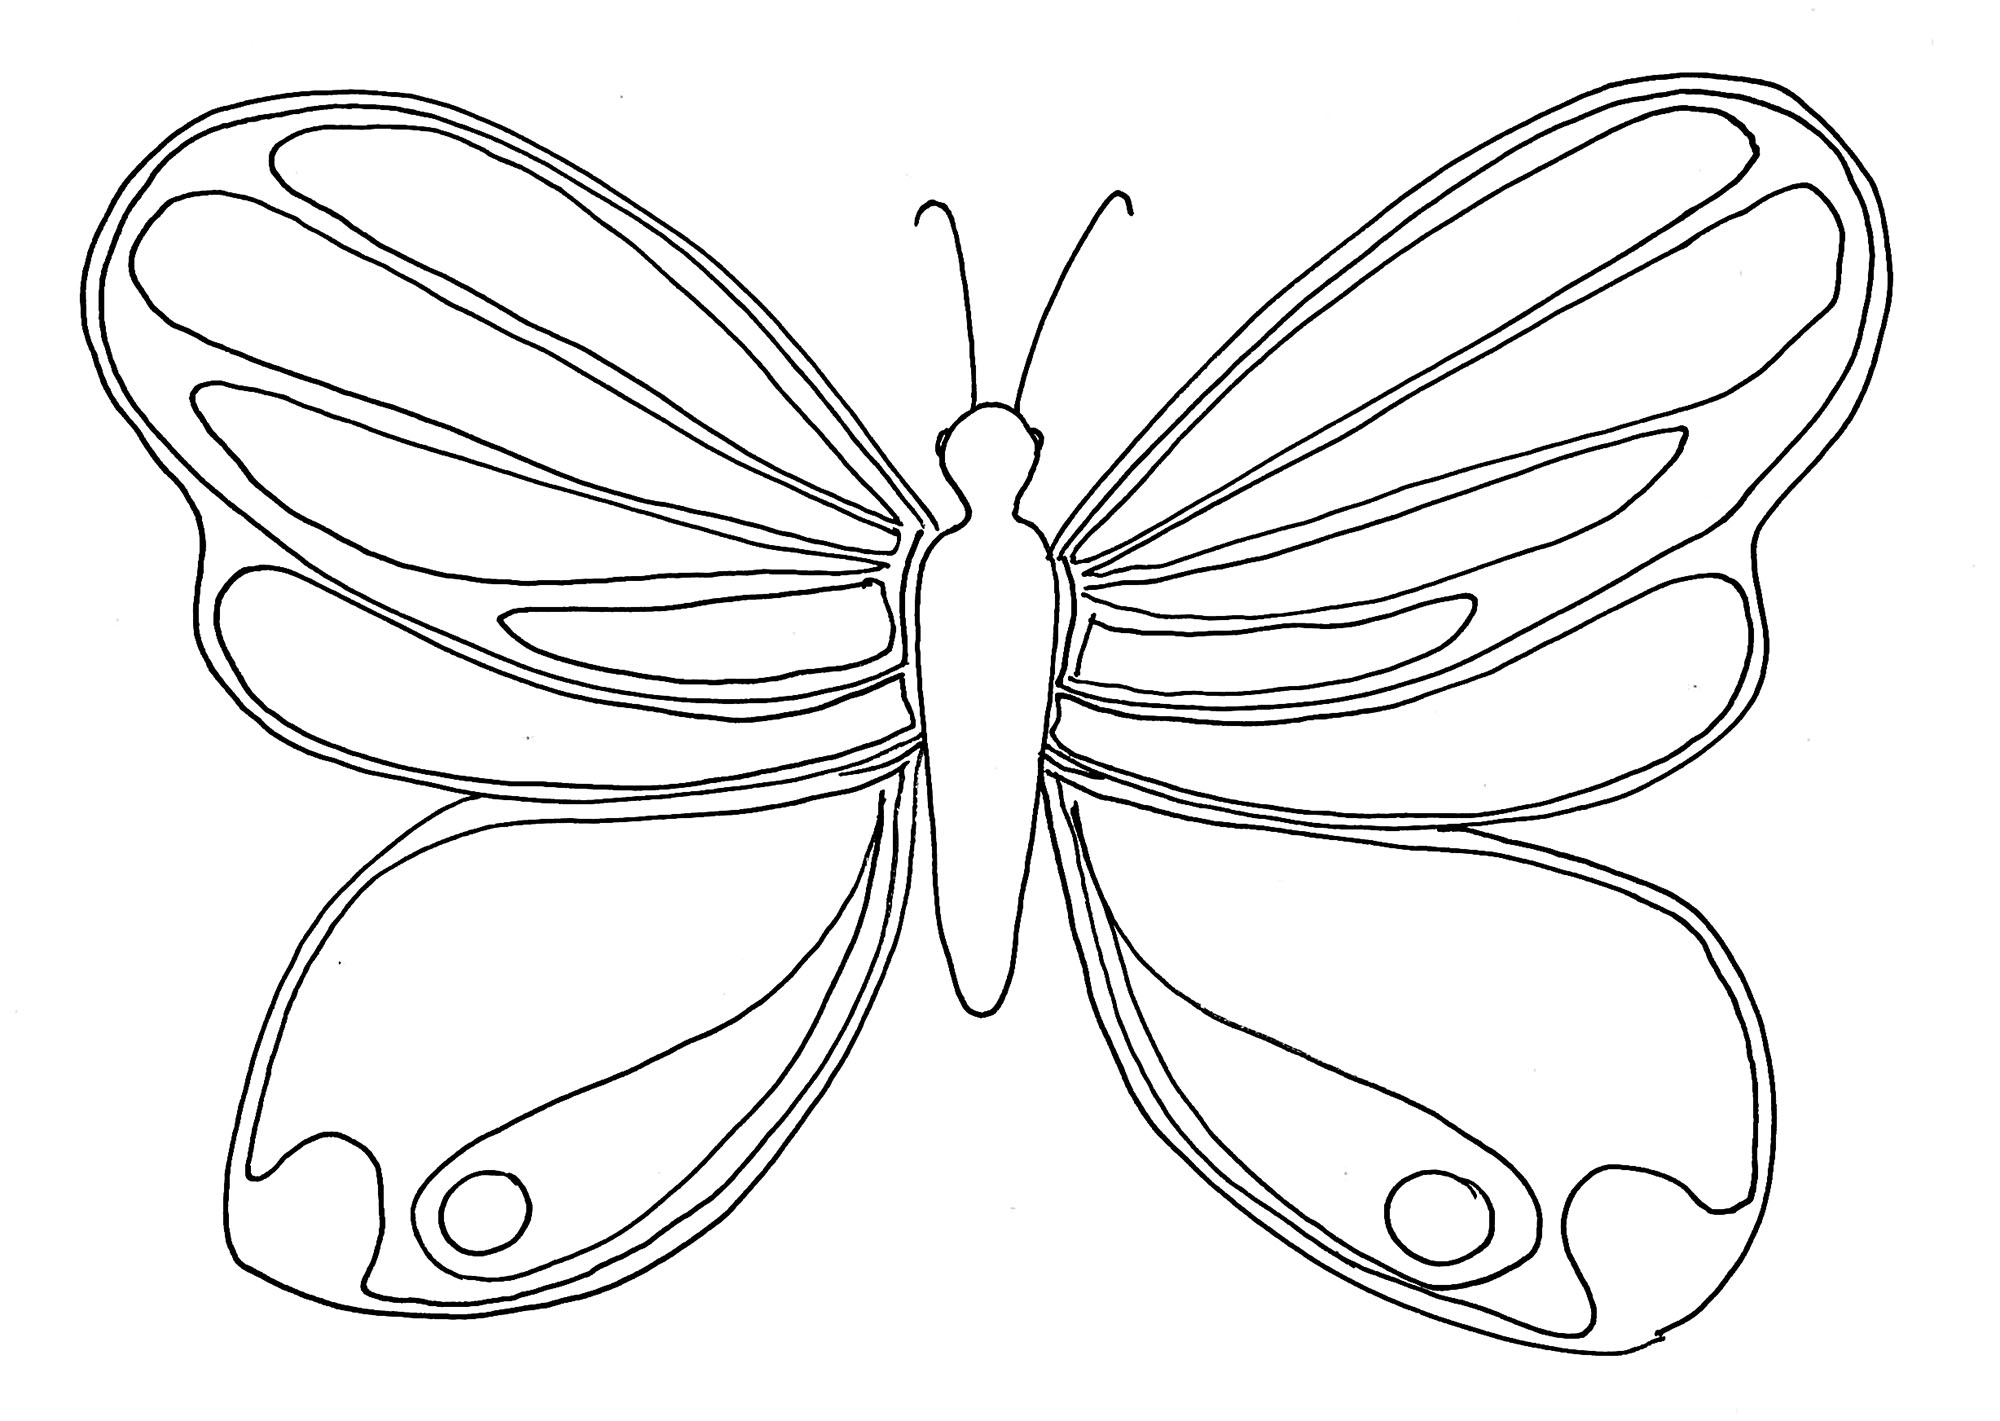 butterflies to color free printable butterfly coloring pages for kids to butterflies color 1 1